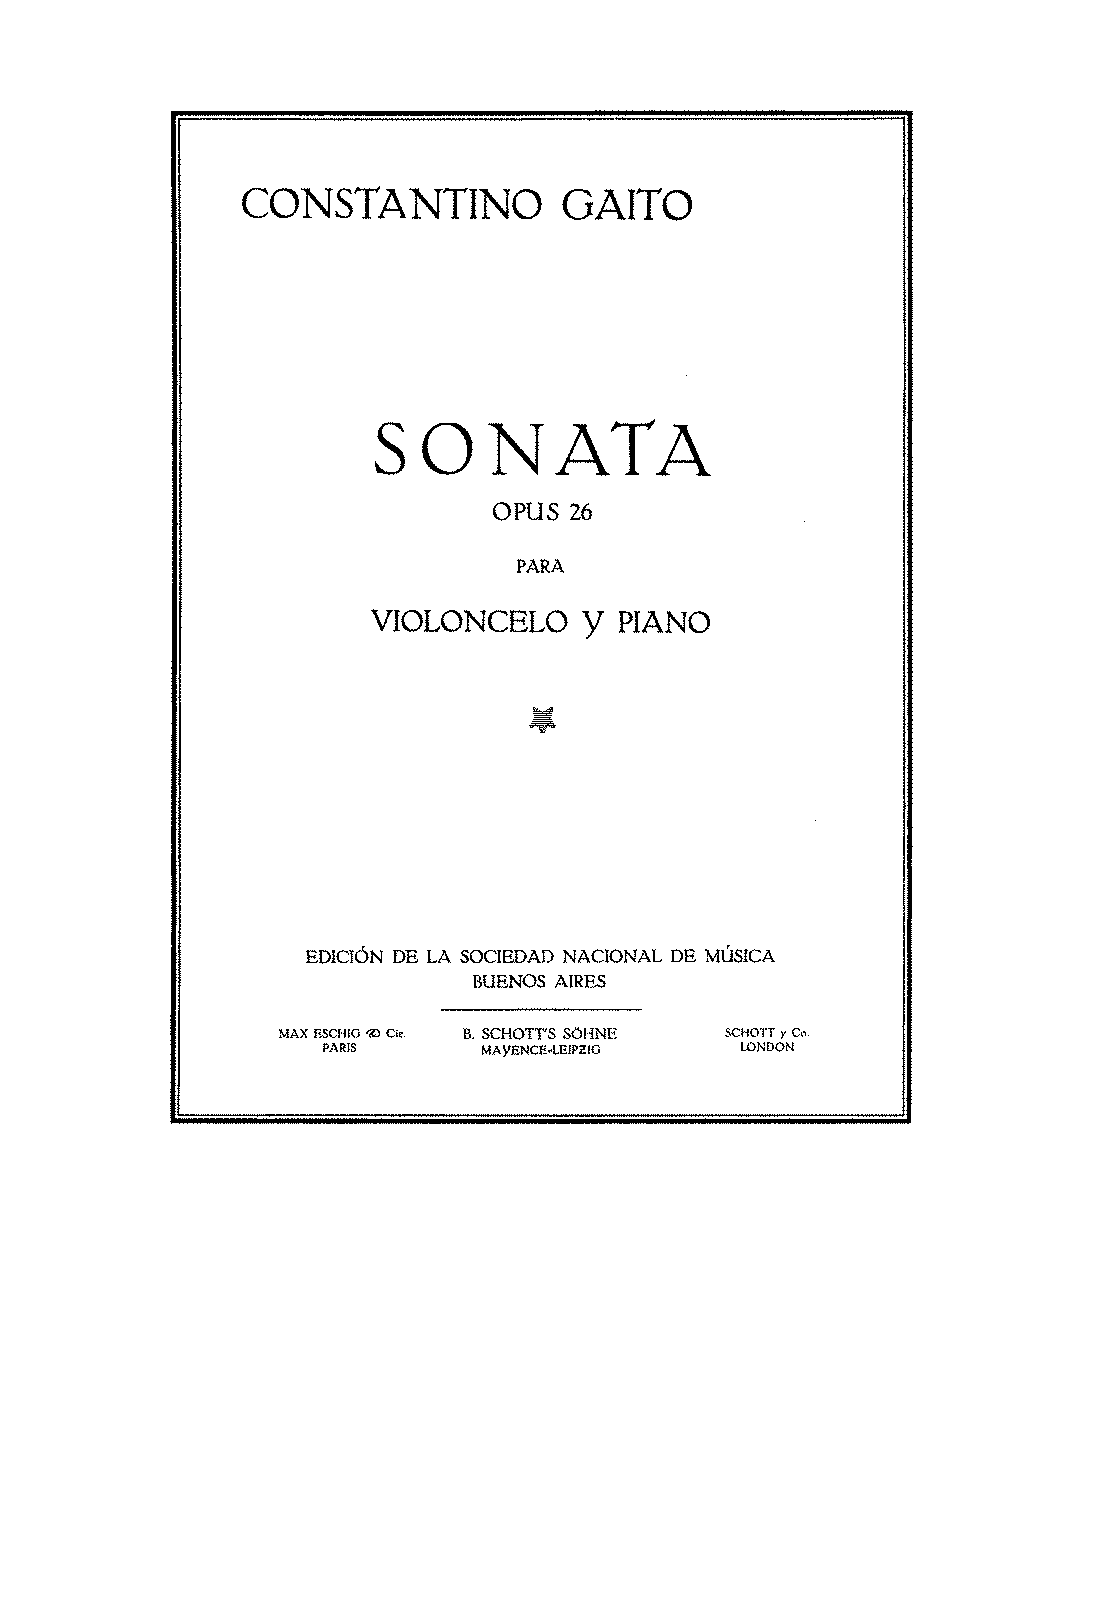 PMLP135007-Gaito - Sonata for Cello and Piano Op26 score.pdf